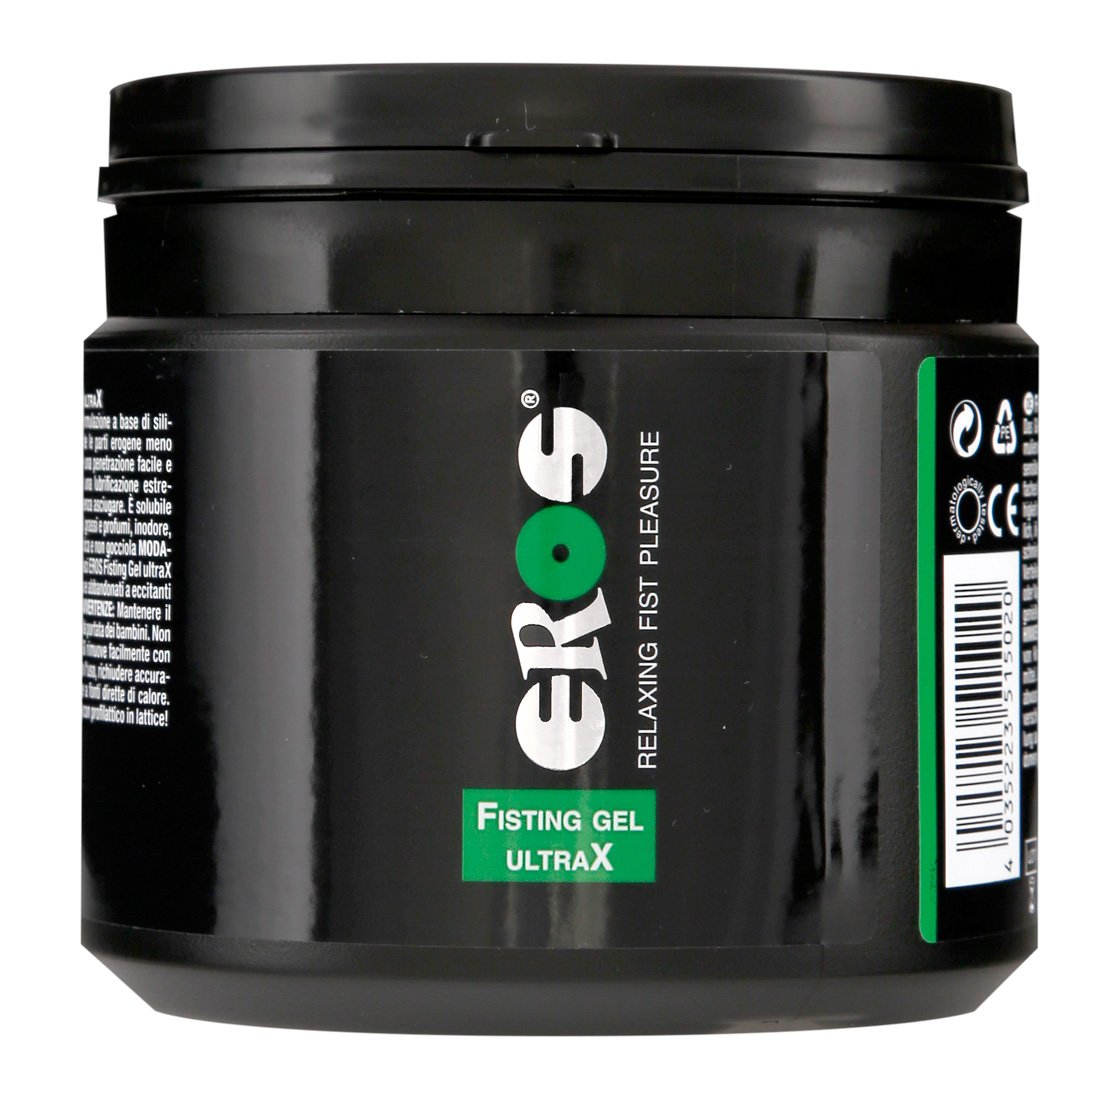 EROS Gel Lubrificante per FISTING Ultrax 500 ML a Base Acquosa